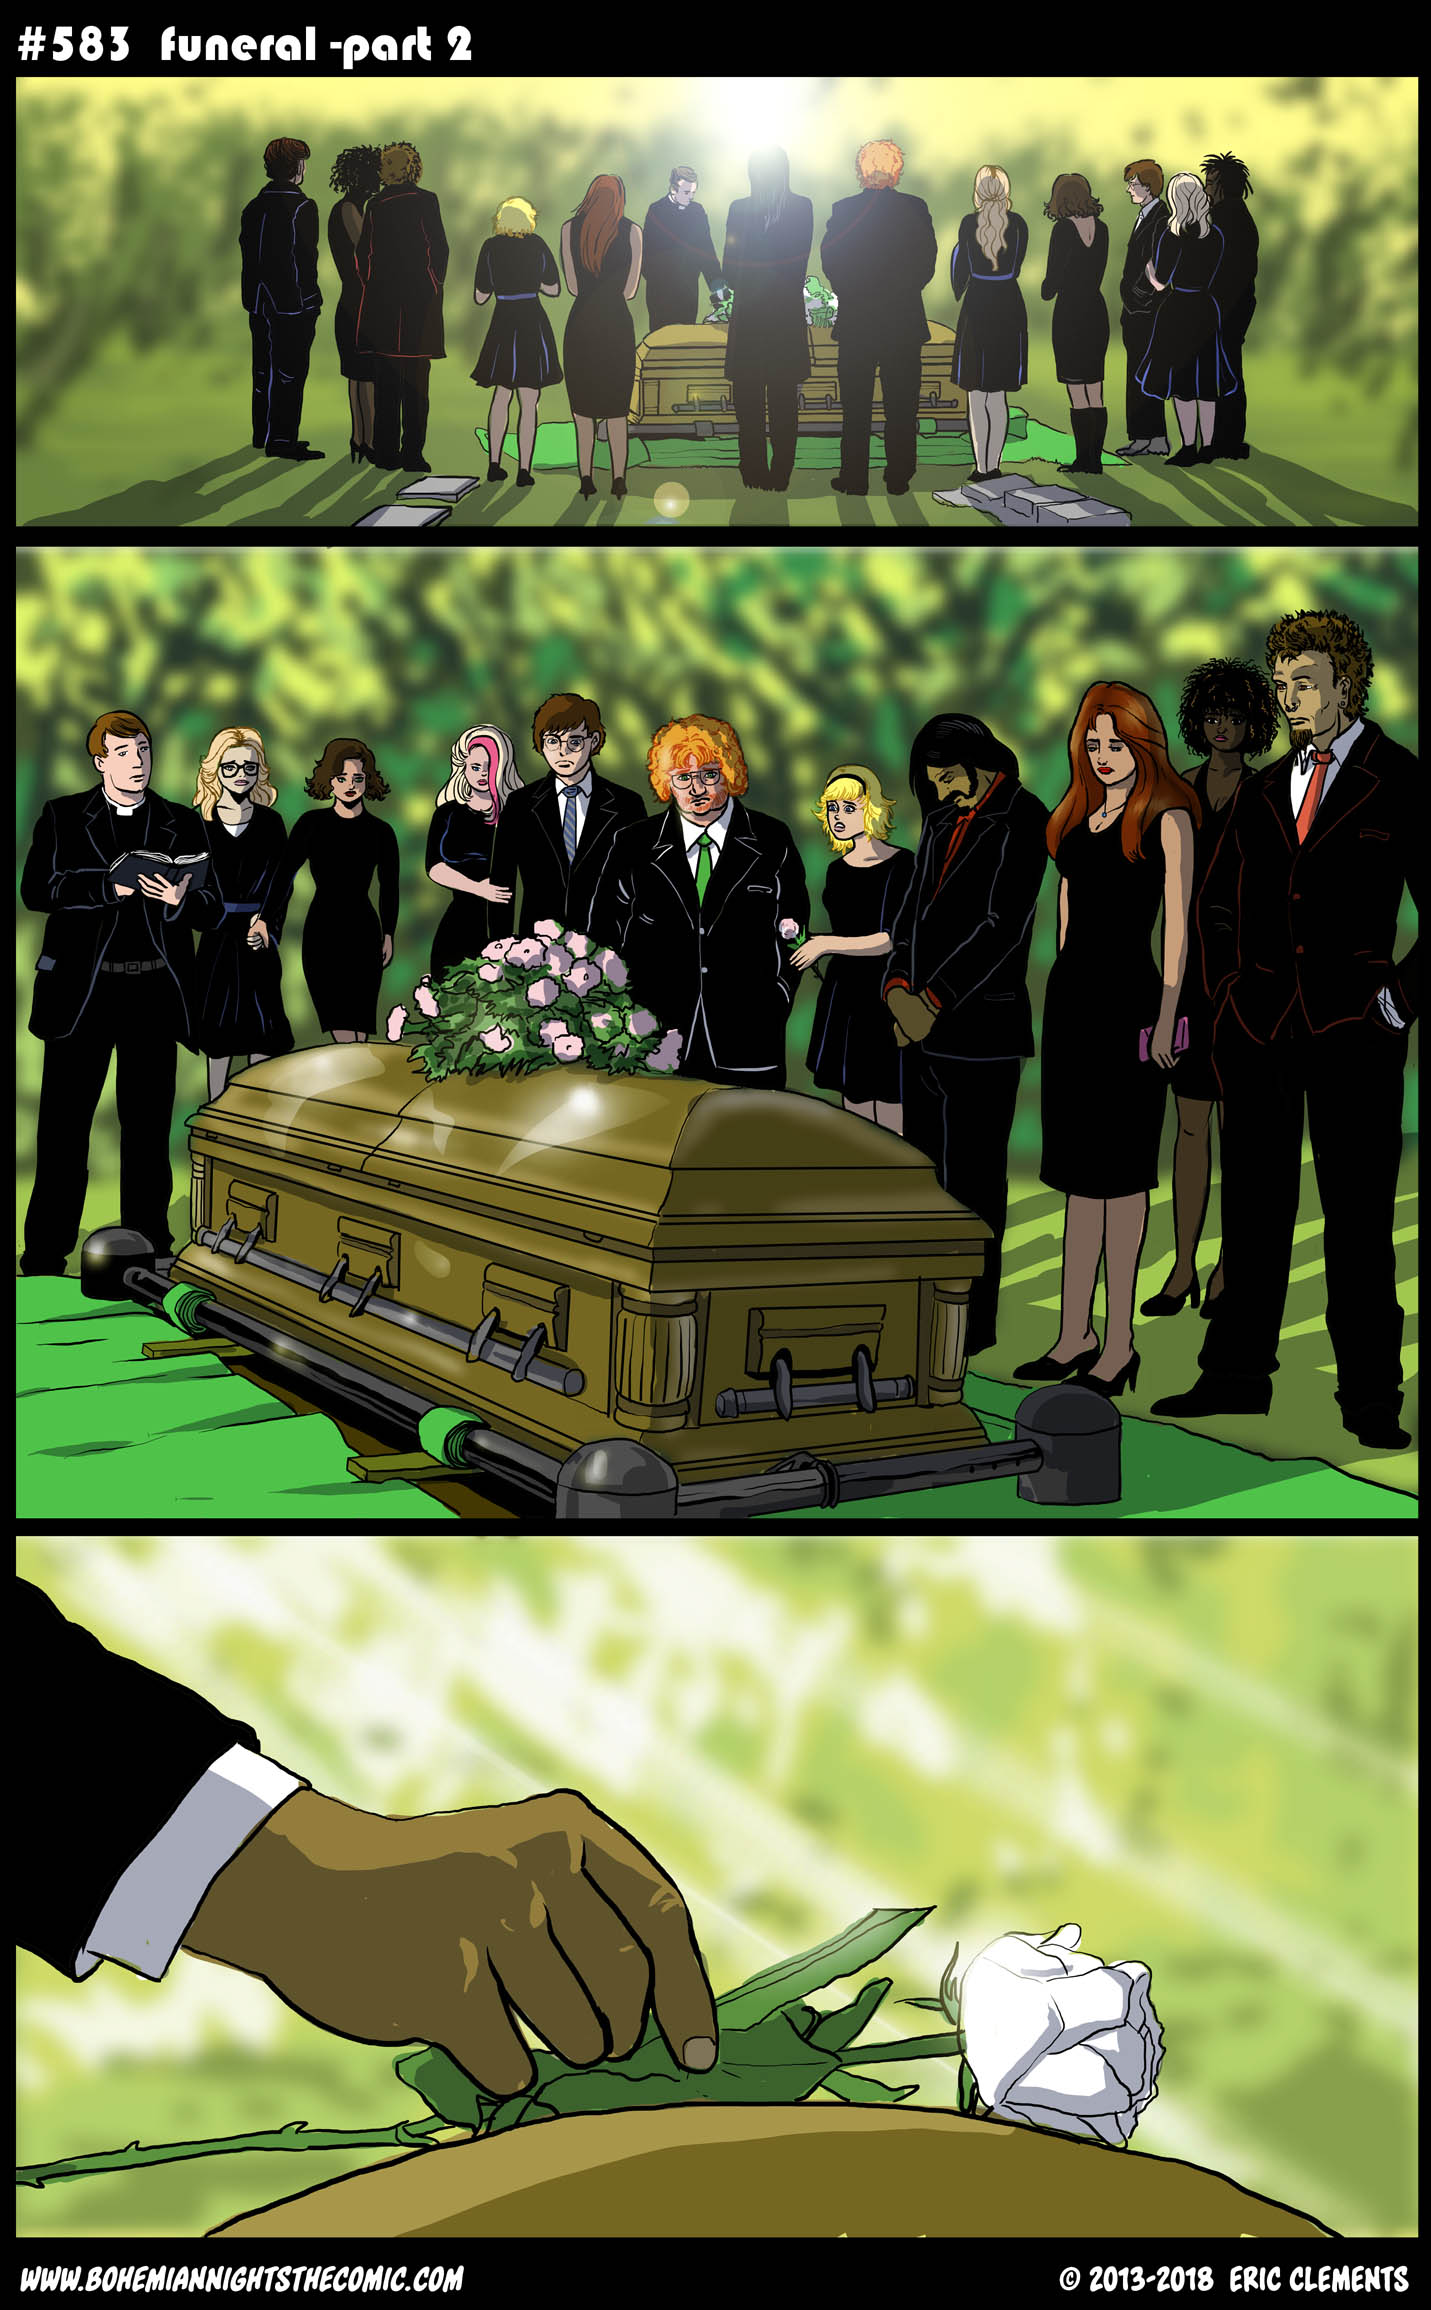 #583 Funeral-part 2